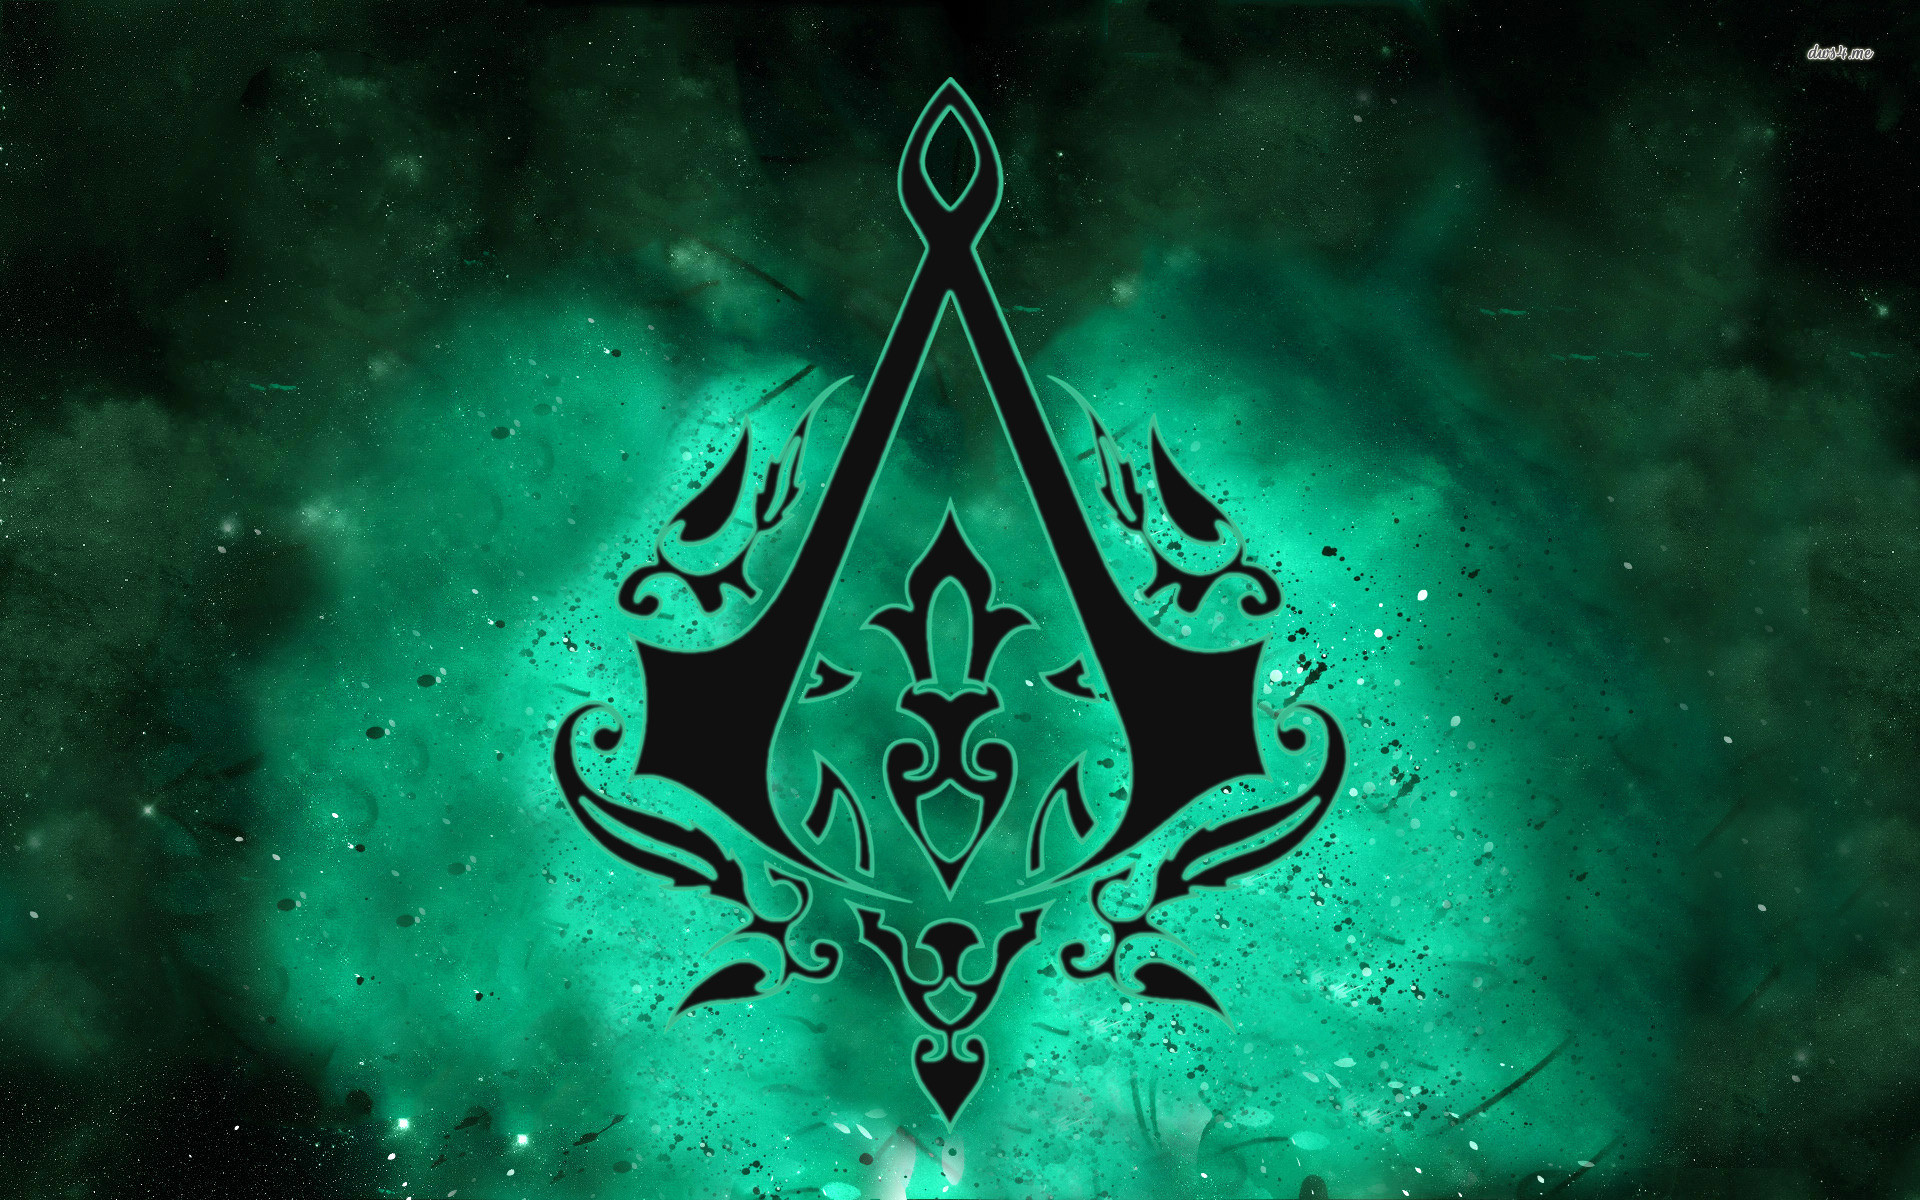 Video Game – Assassin's Creed Wallpaper